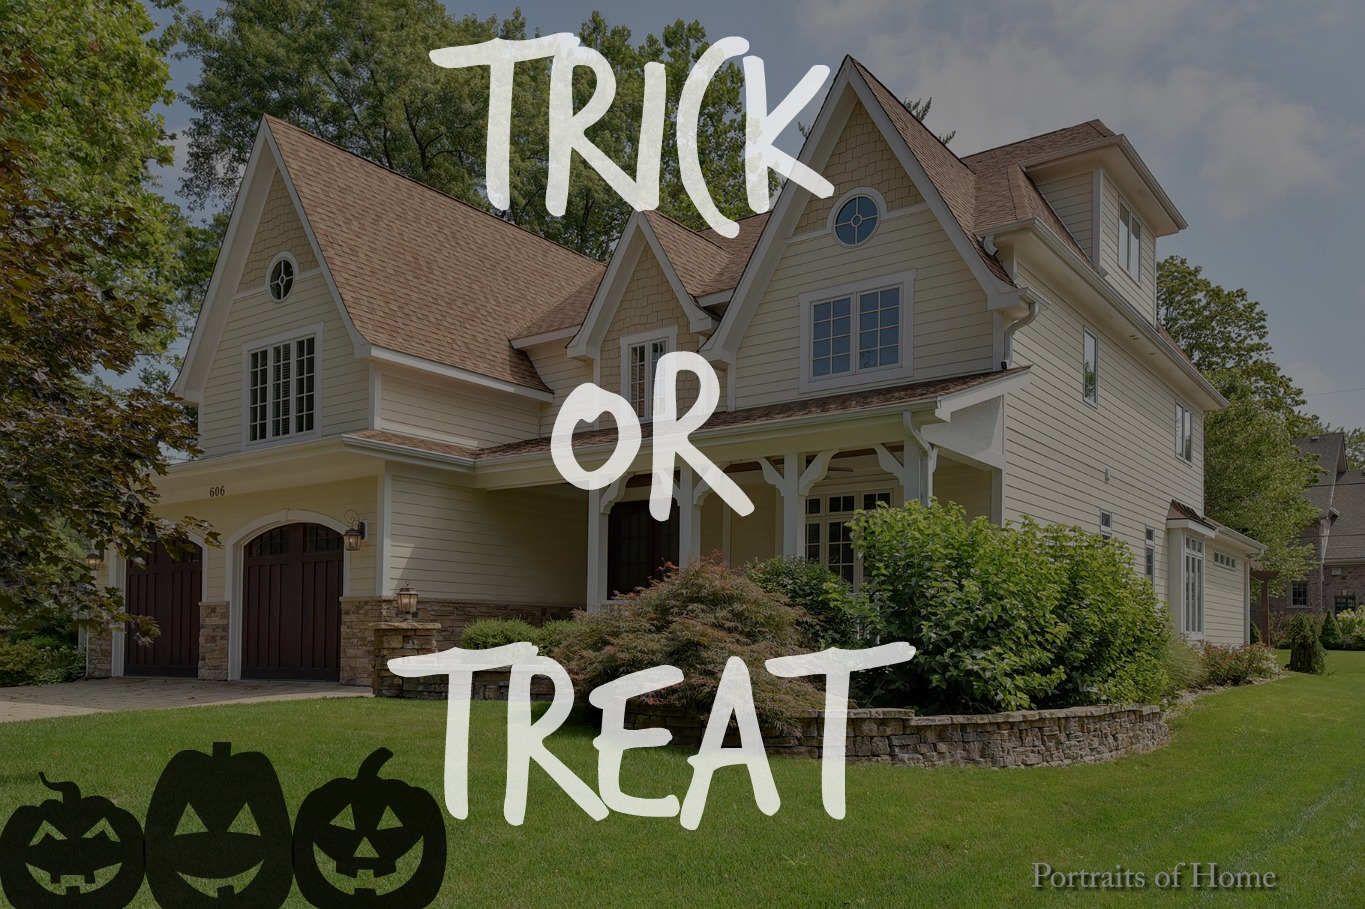 Halloween House: Trick or Treat